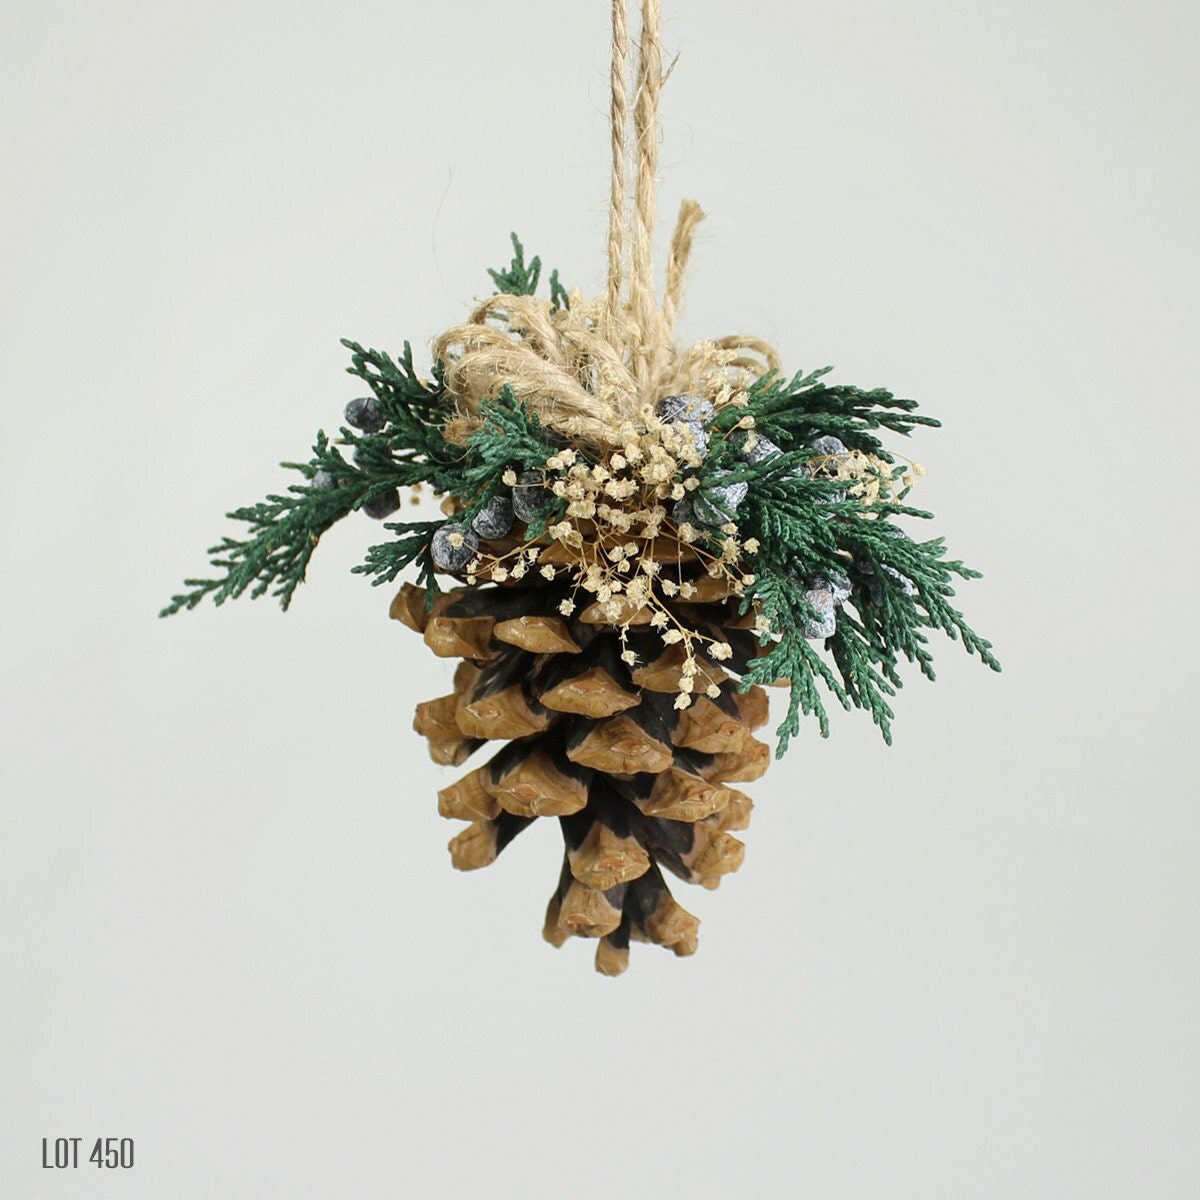 Pine Cone Christmas Decorations Christmas Decorations Christmas Tree Ornament Pine Cone